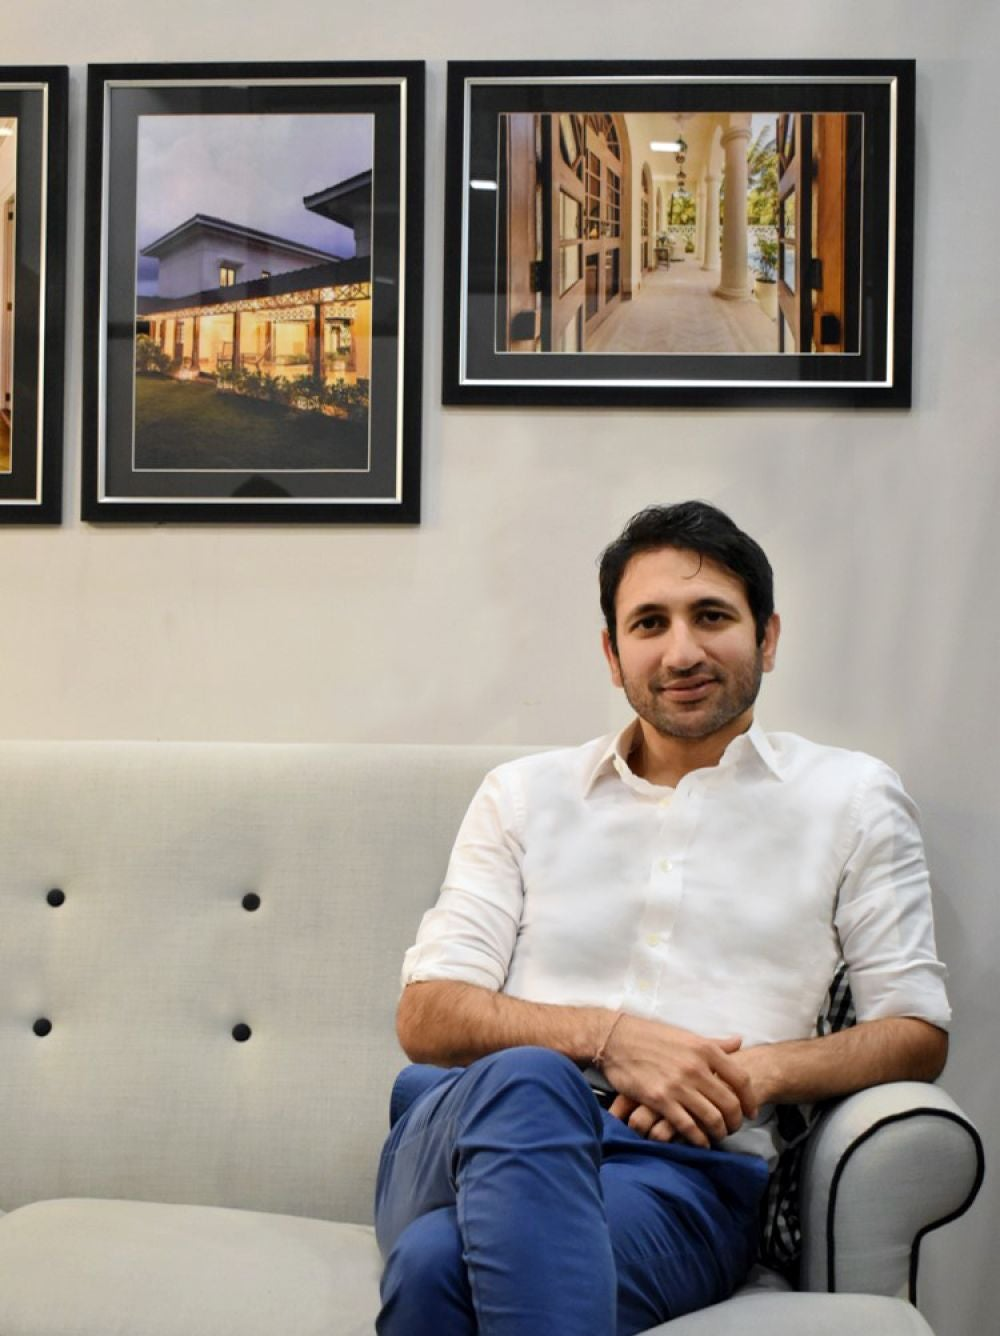 The Luxury- Builder – Nibhrant Shah, 34